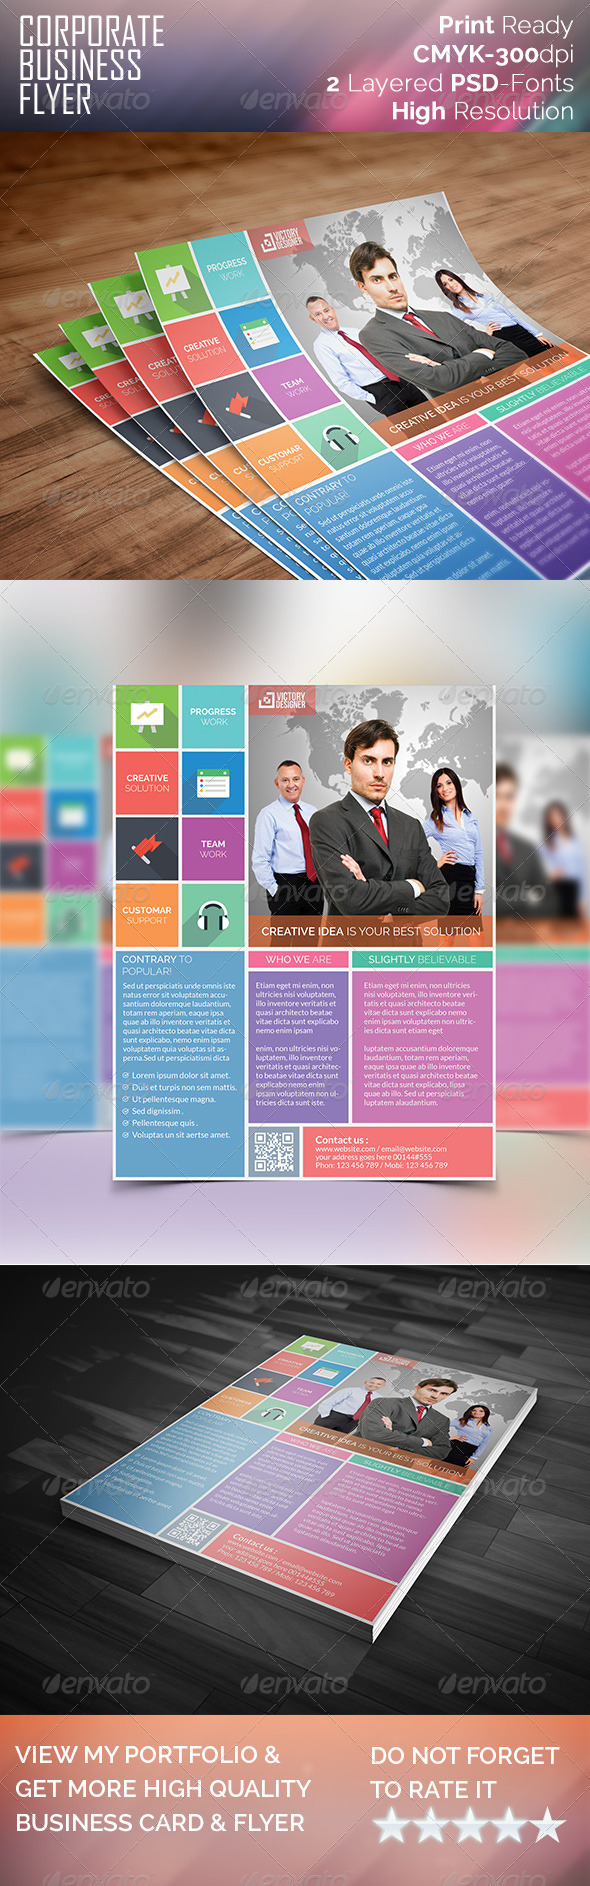 GraphicRiver Corporate Business Flyer 7914878